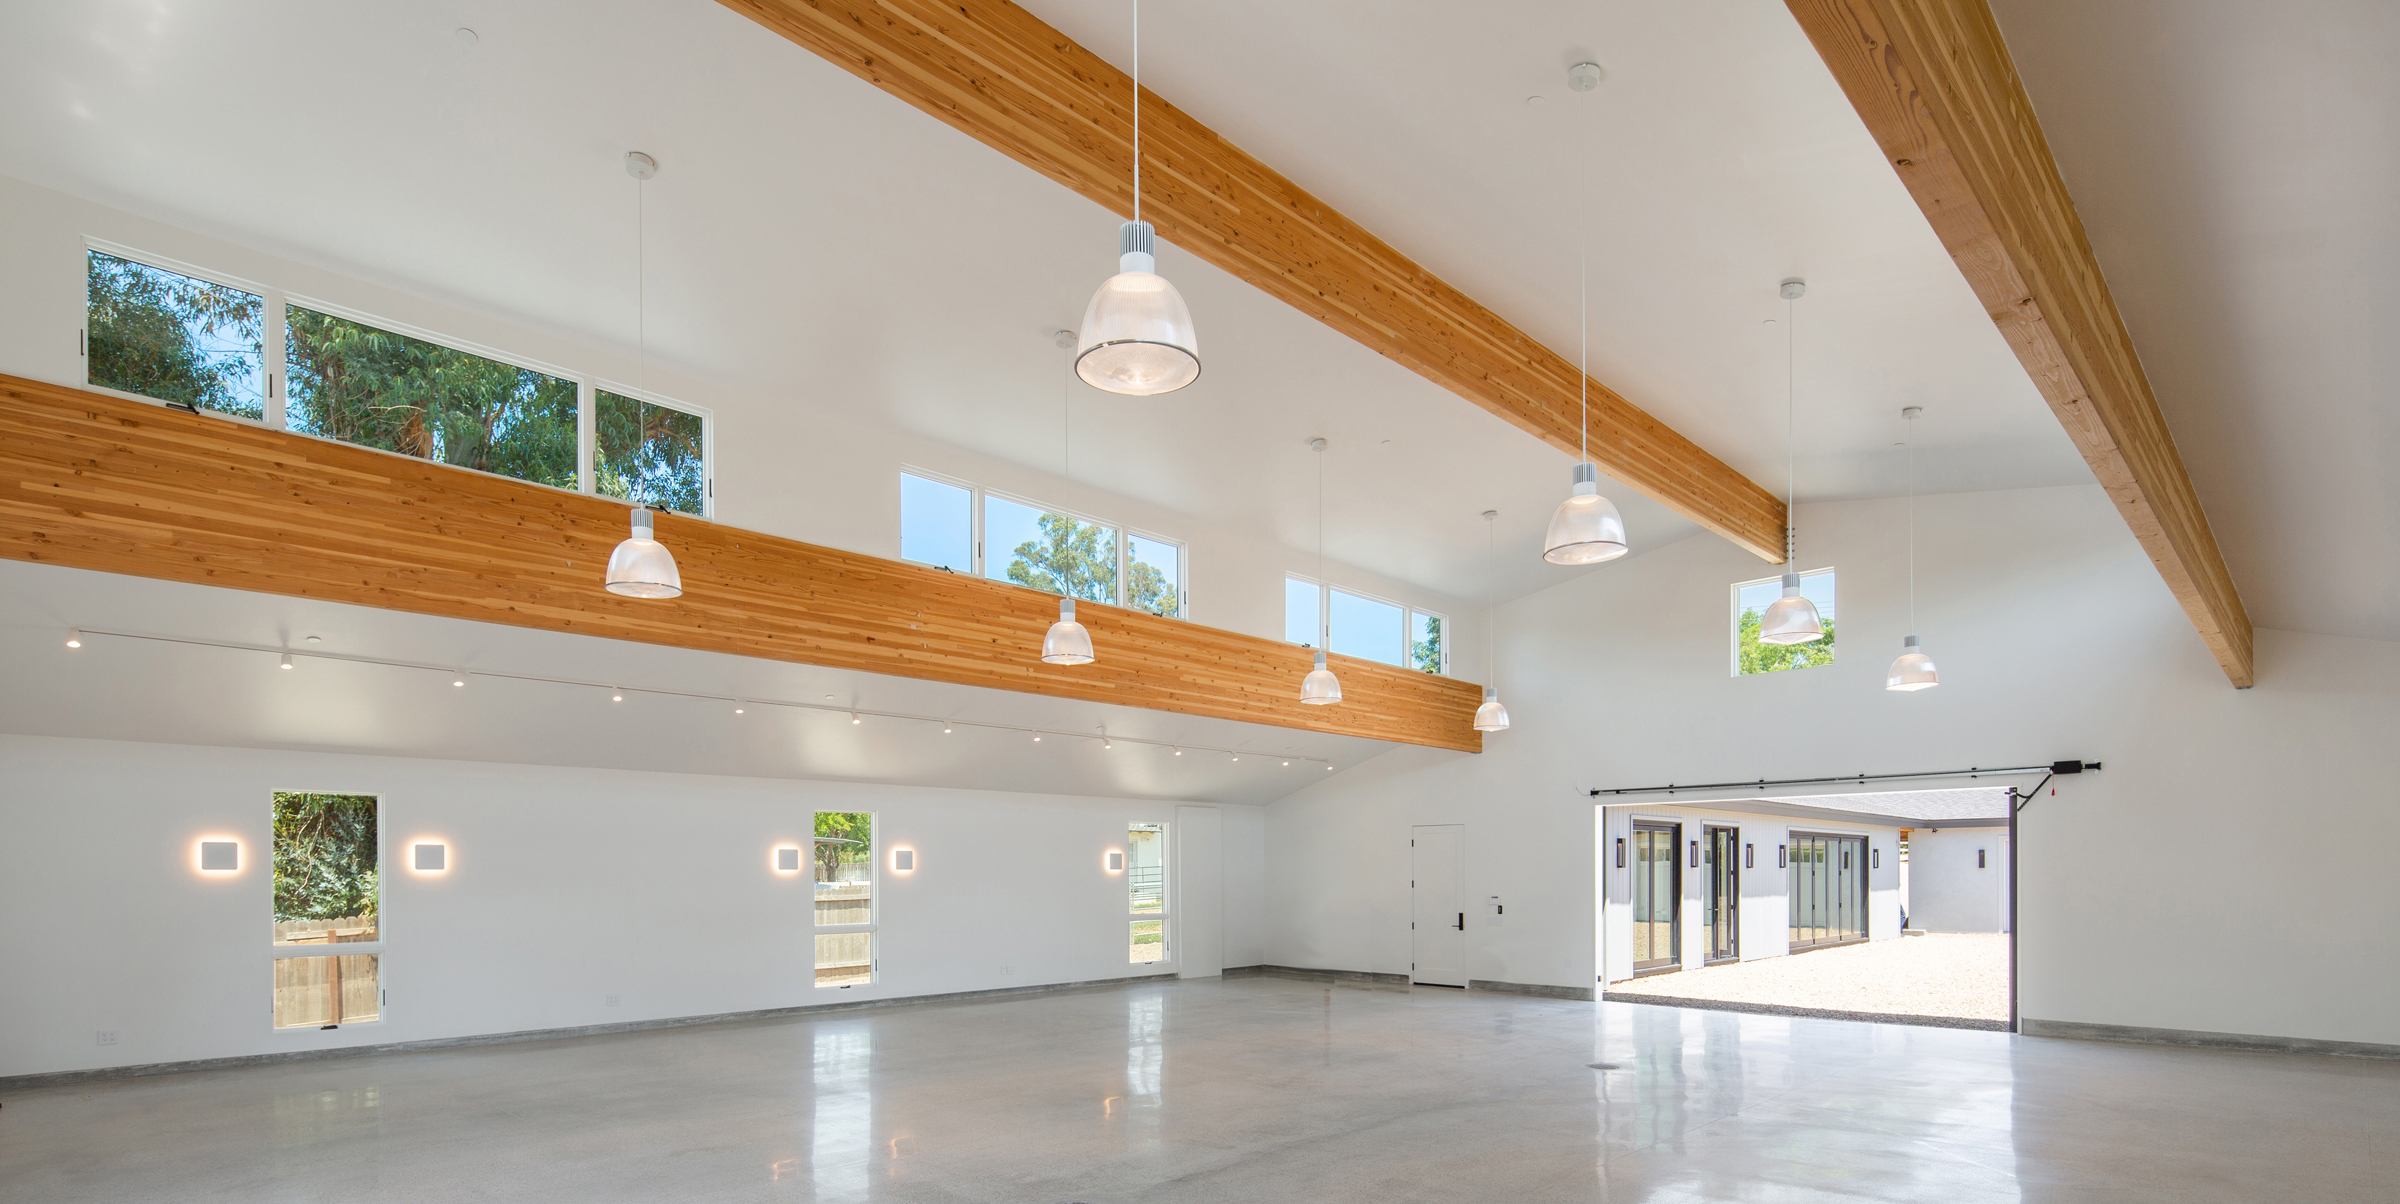 Showcar Garage Addition, ENR architects, Thousand Oaks, CA 91360